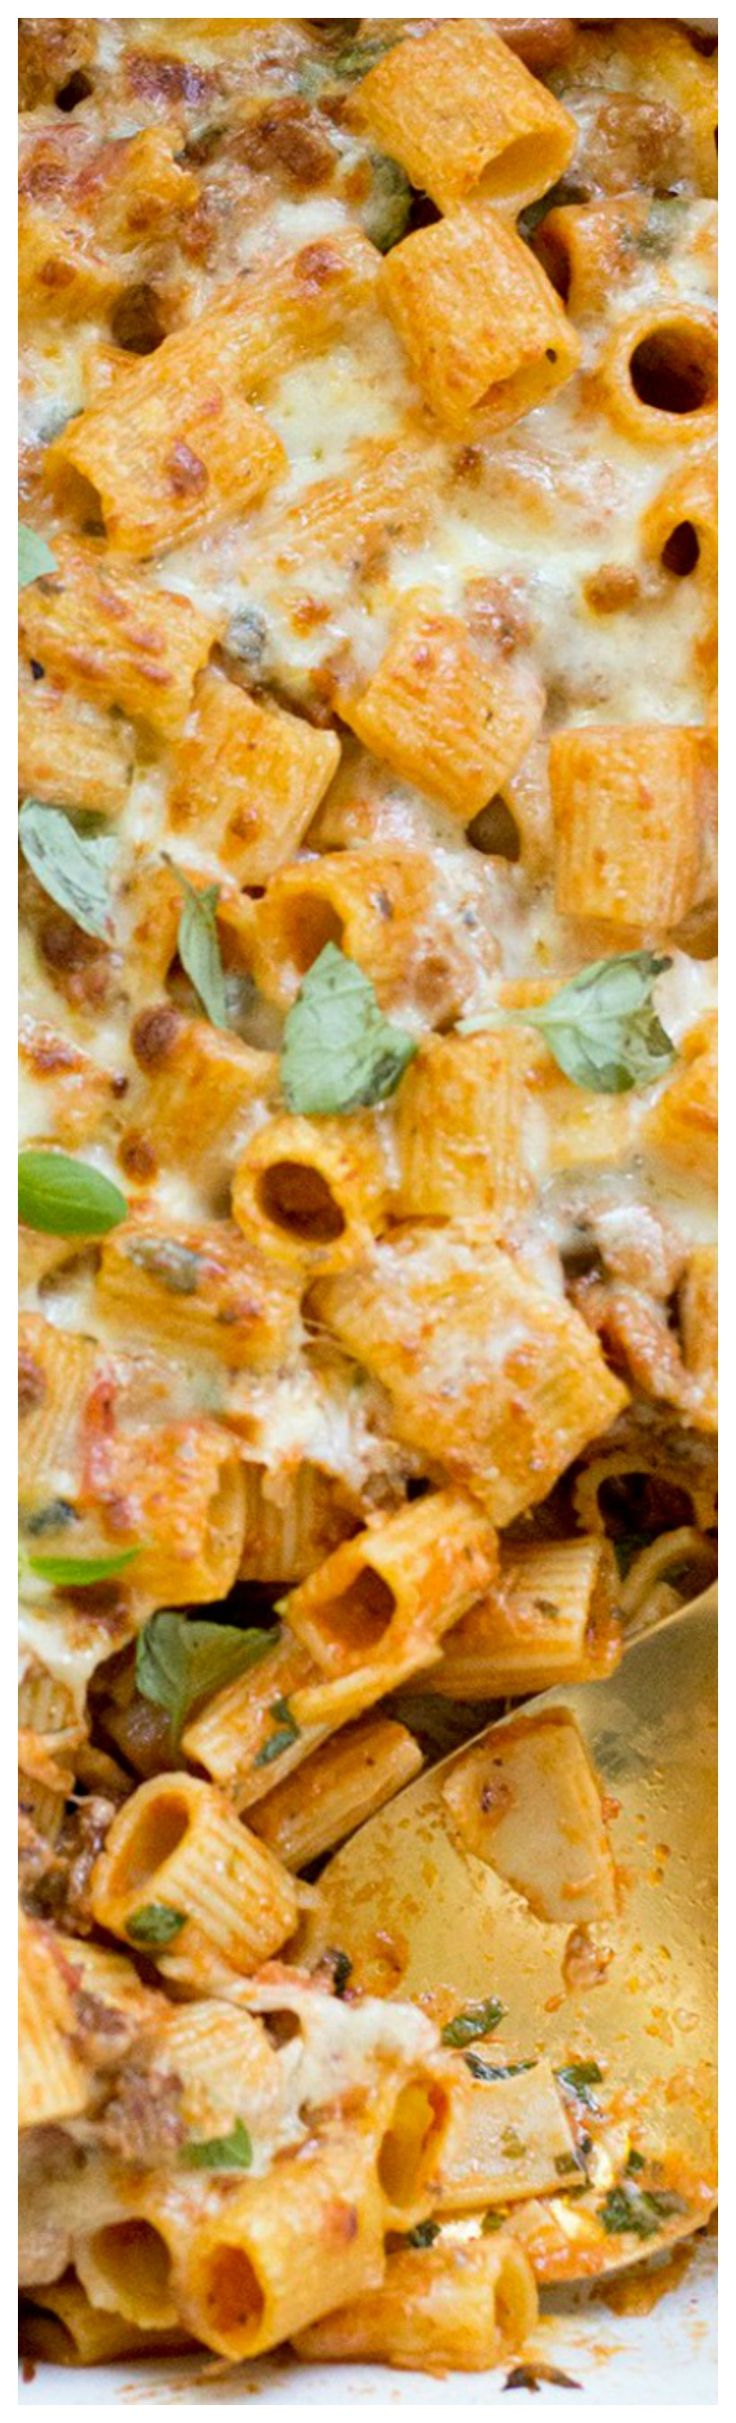 Creamy Baked Sausage Rigatoni ~ The ultimate in weeknight comfort food... Small Mezzi Rigatoni noodles in a rich and cheesy pink sauce, baked to perfection.